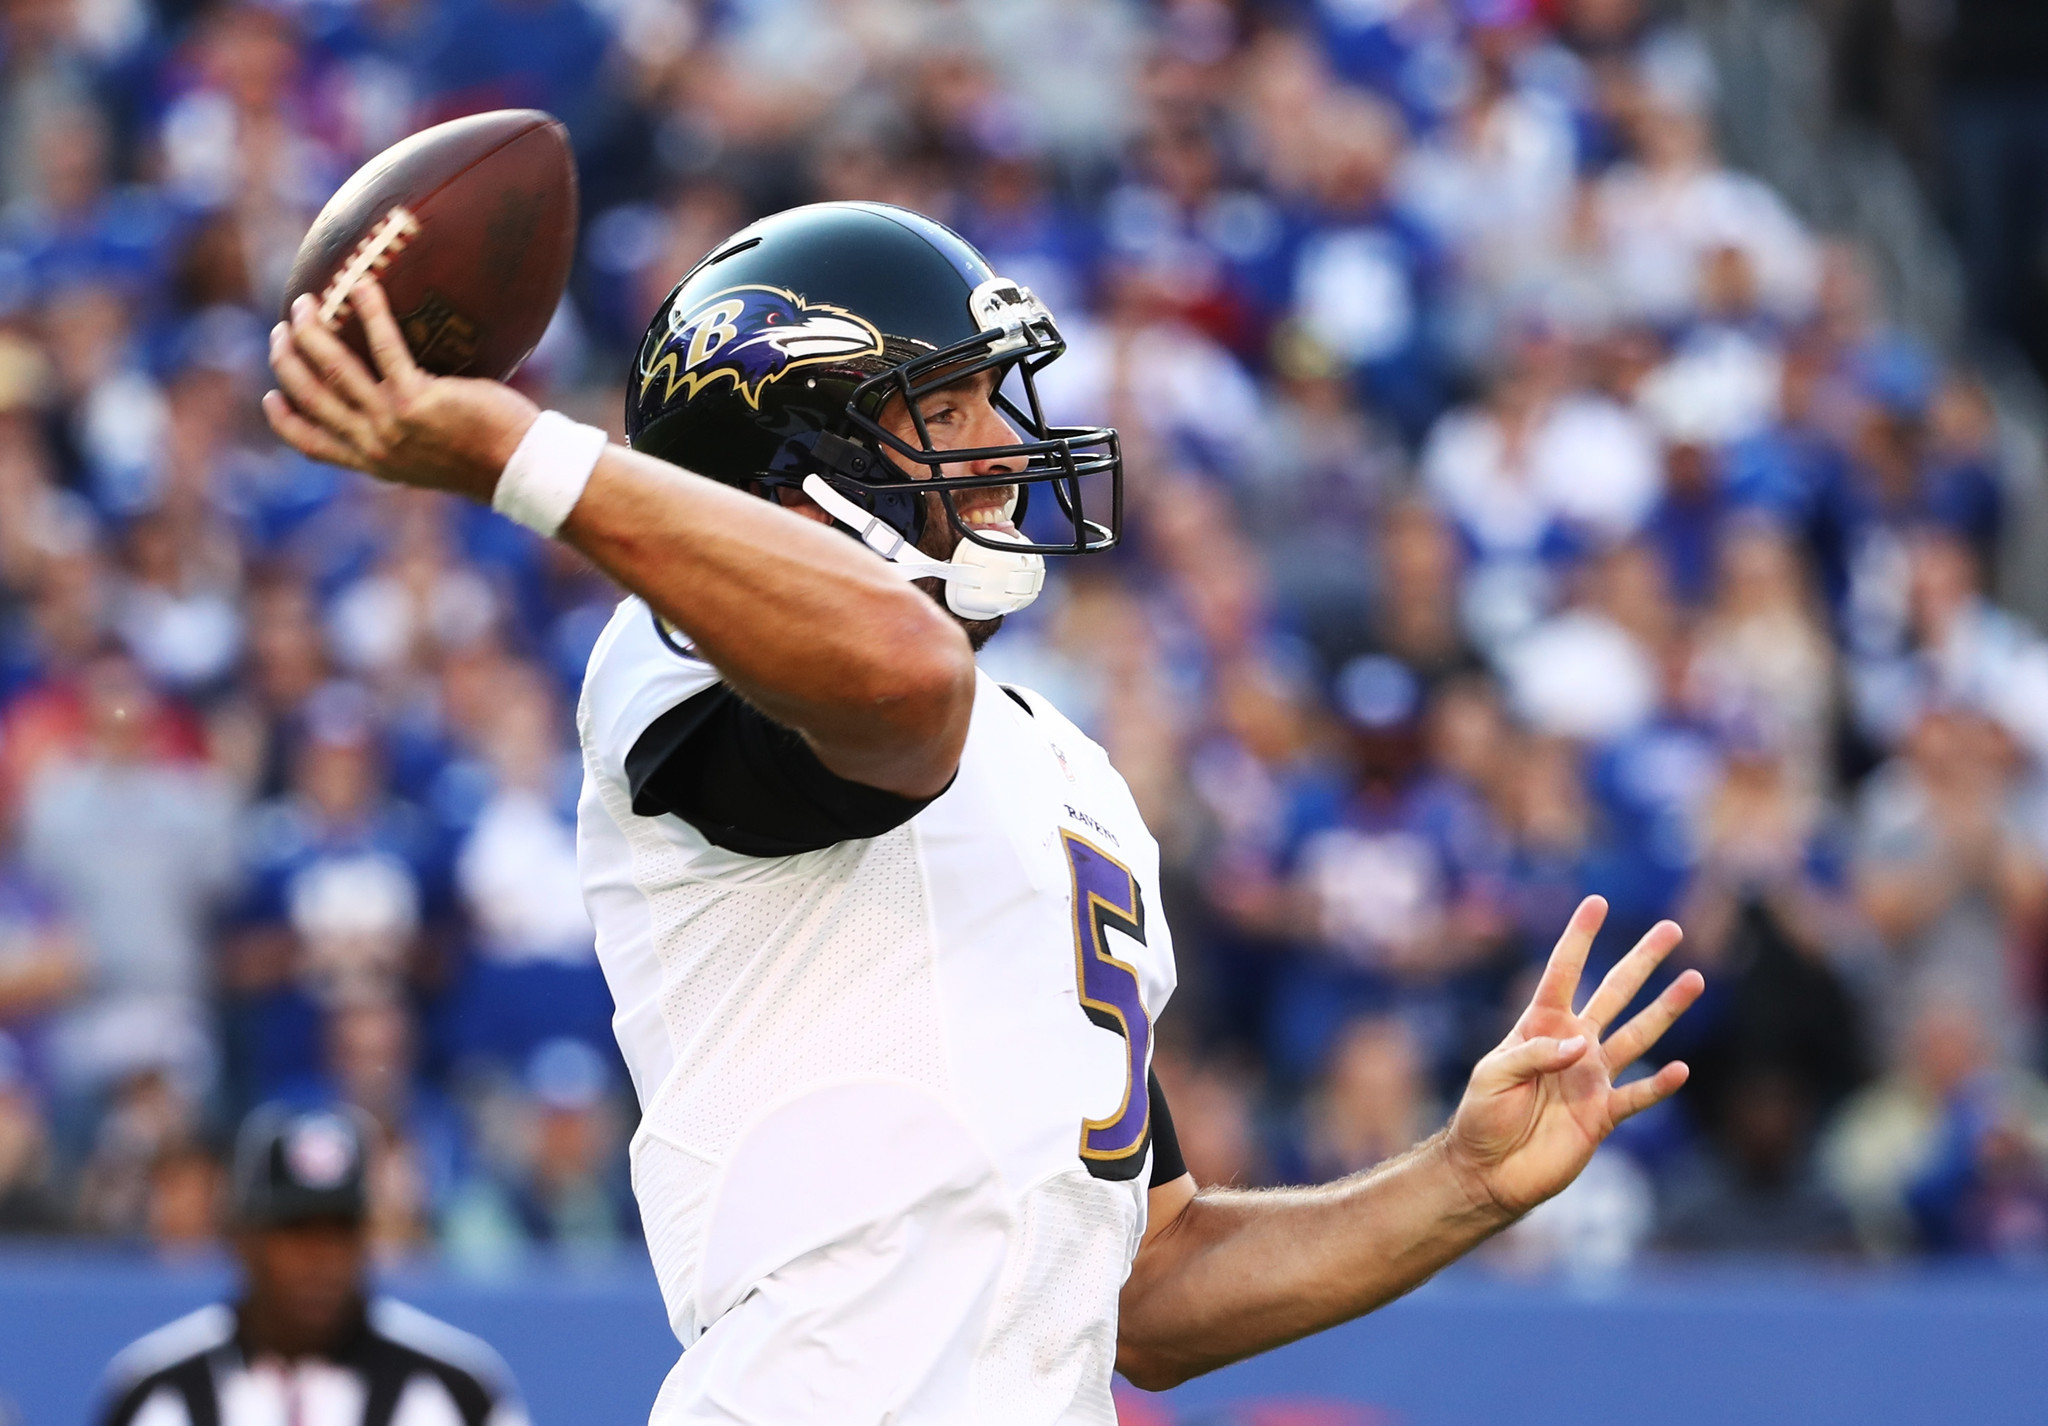 Bal-joe-flacco-is-active-but-missing-from-warm-ups-prior-to-ravens-game-vs-new-york-jets-on-sunday-20161023